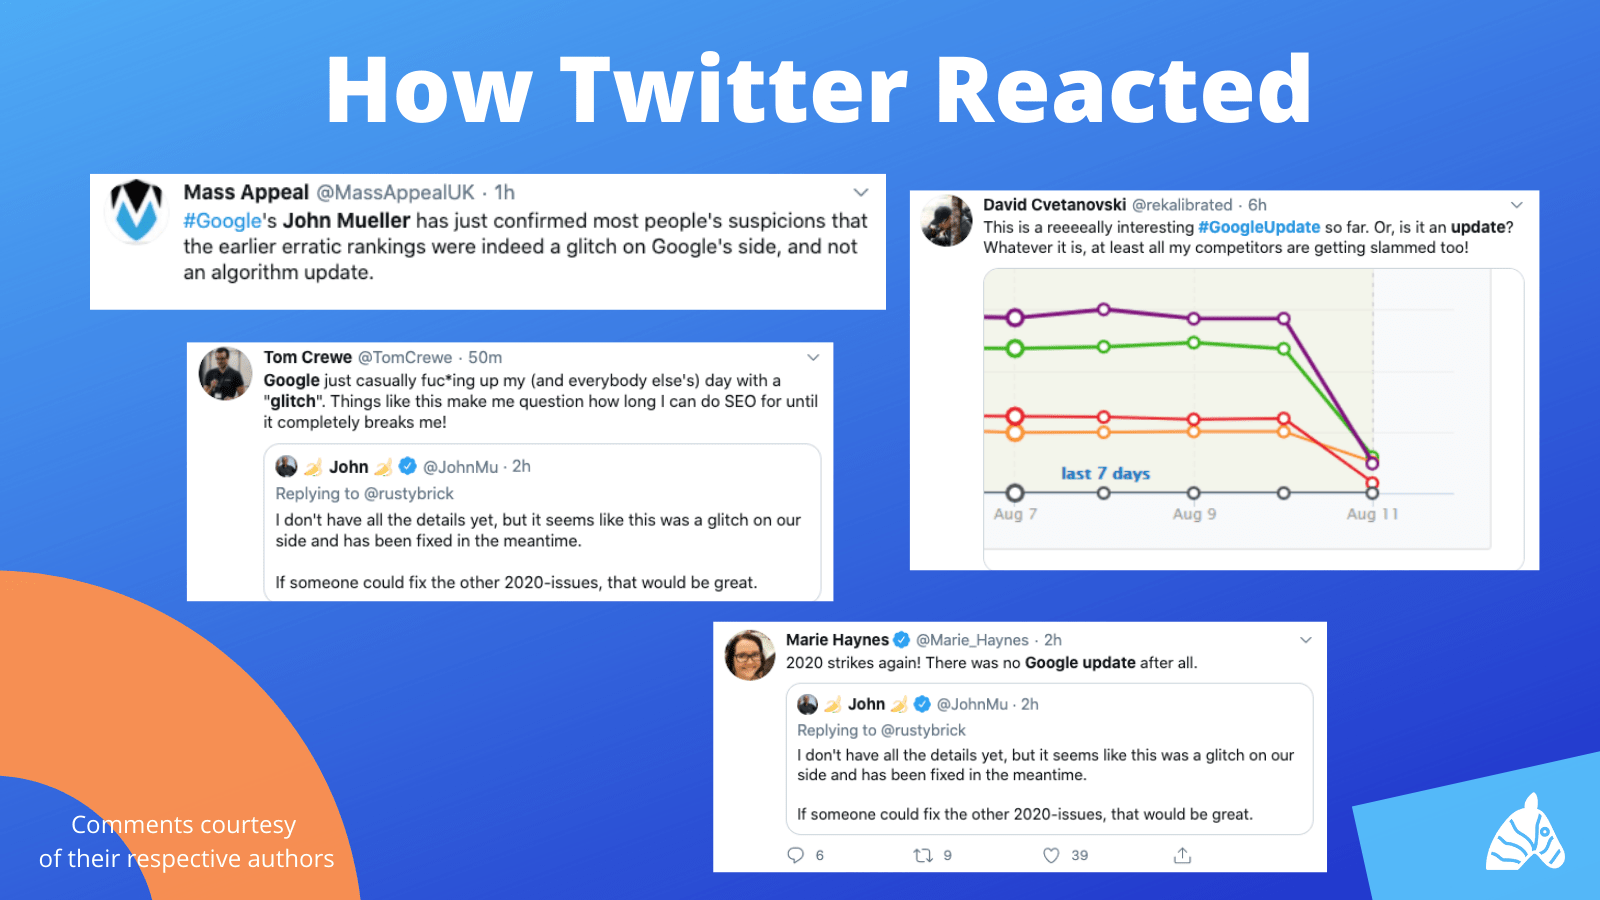 twitter reacts to Google Algorithm Glitch August 2020